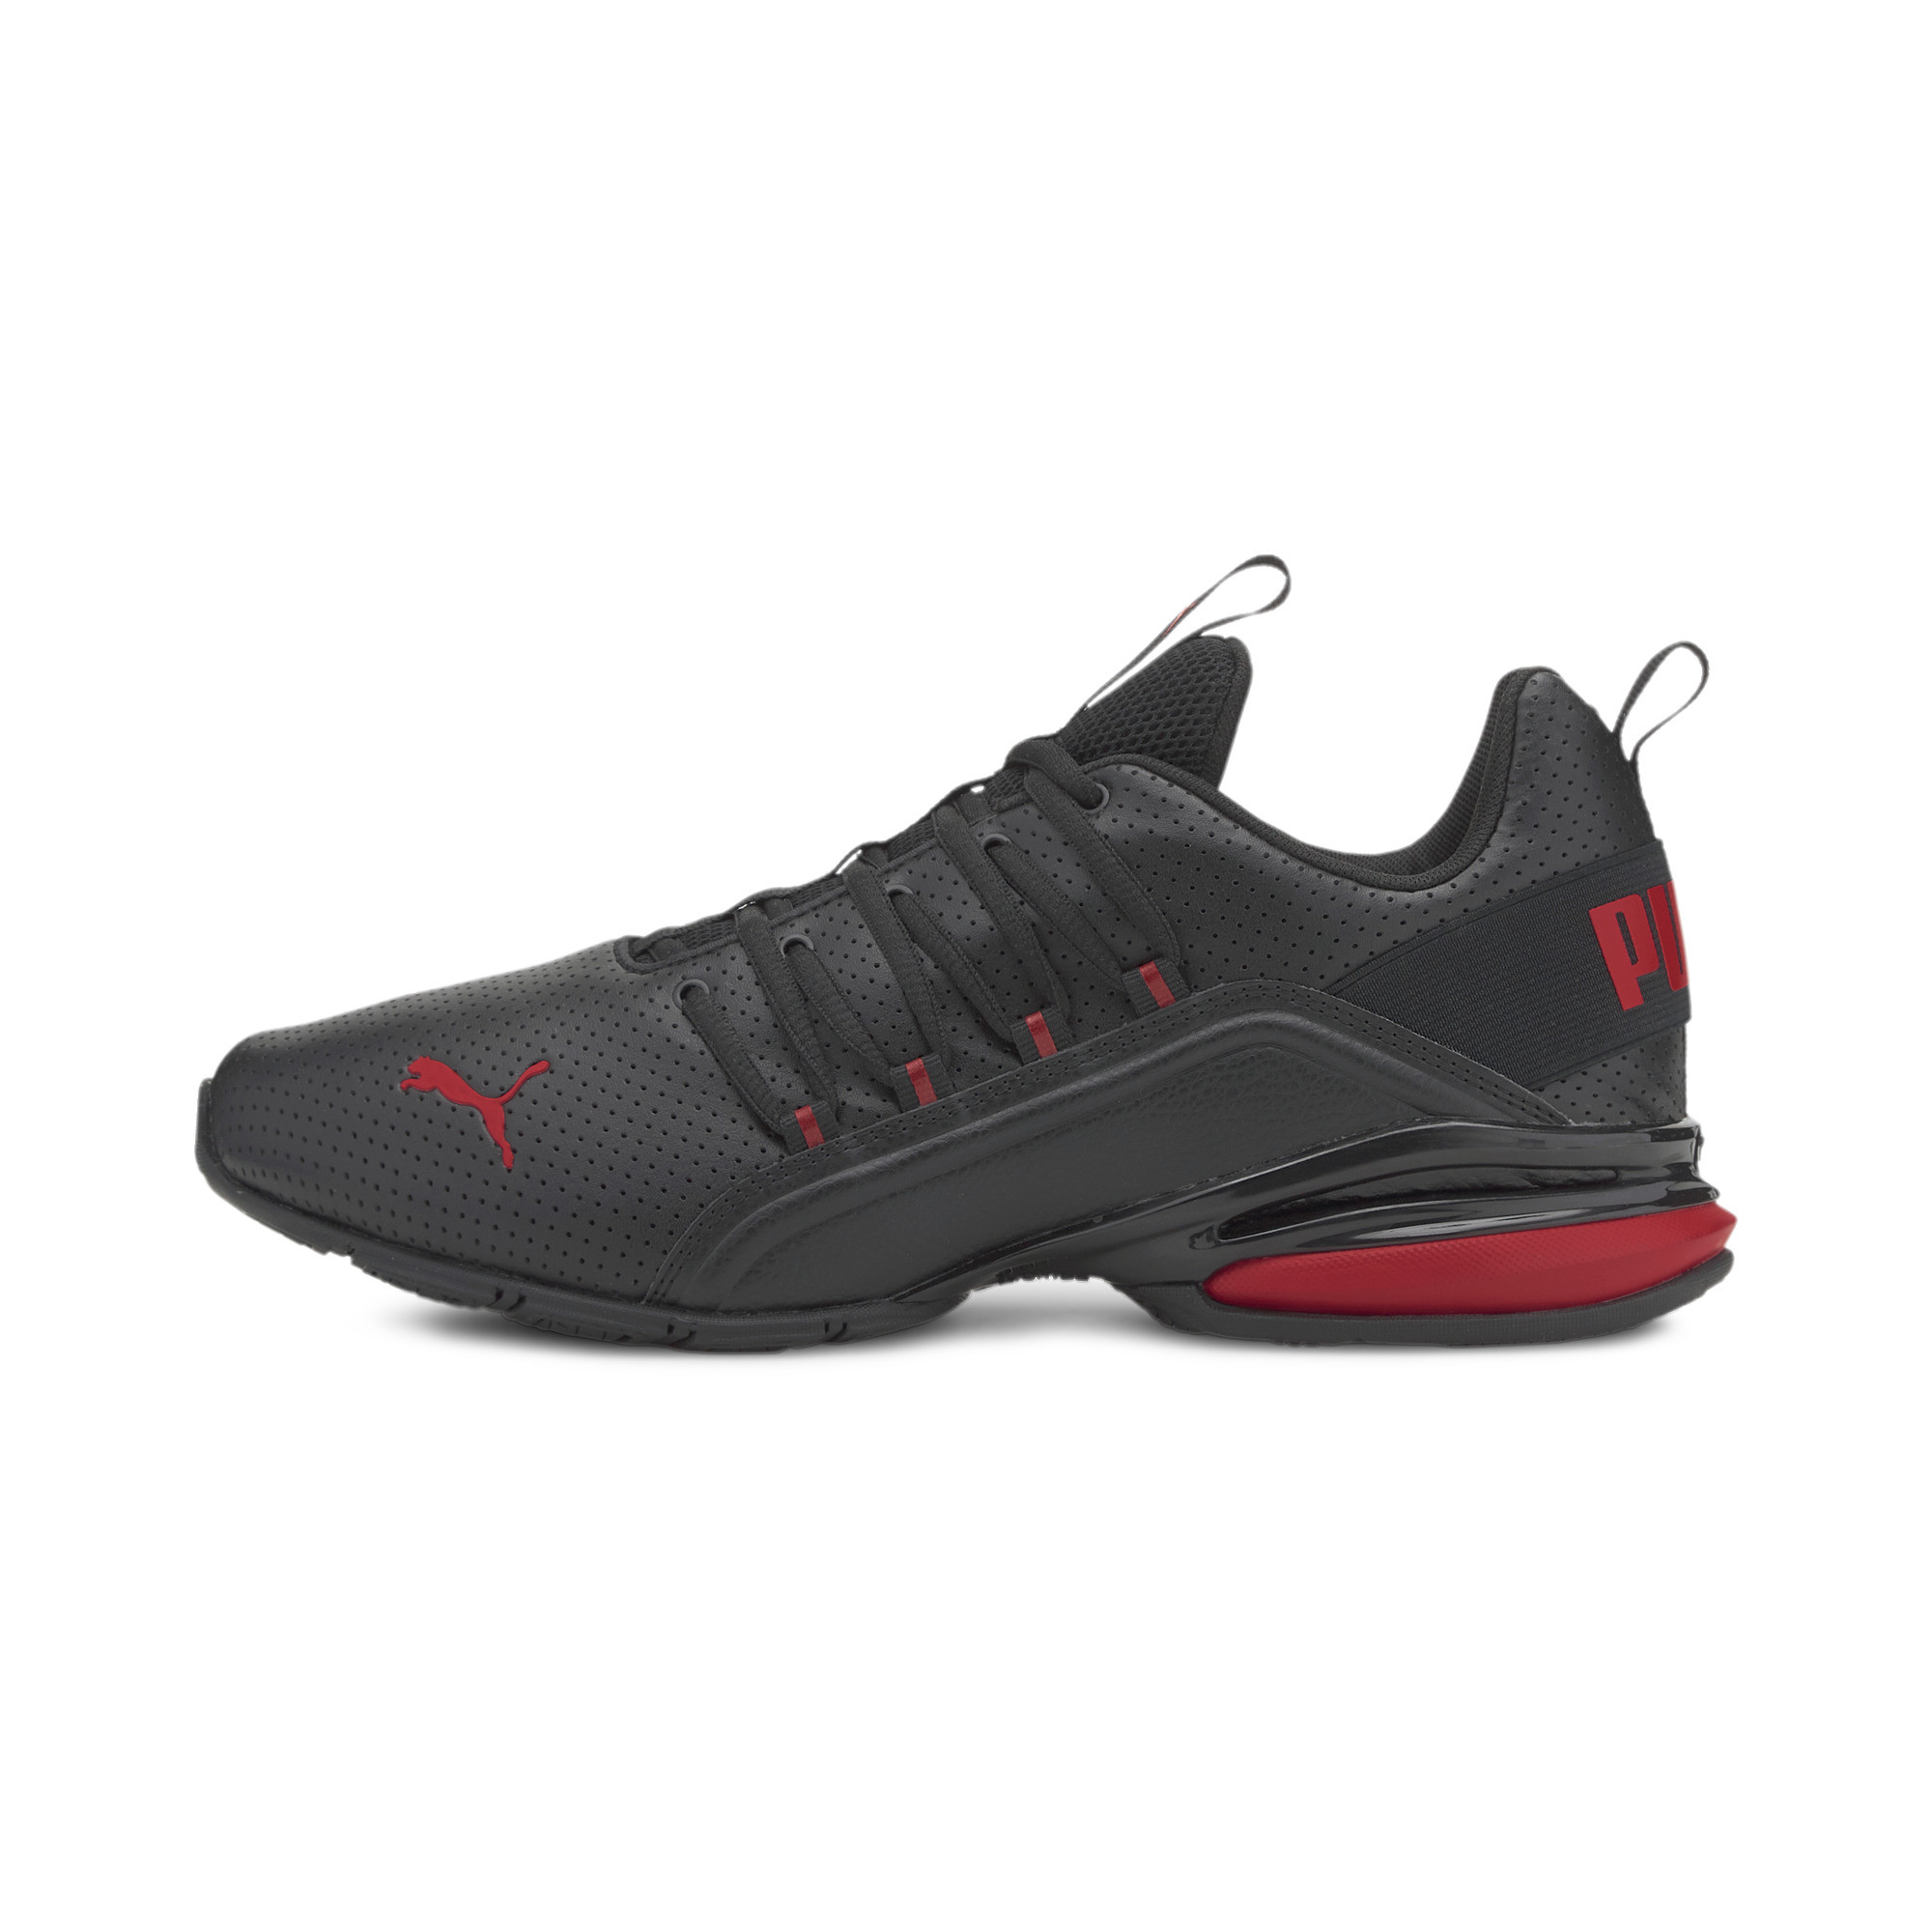 PUMA-Men-039-s-Axelion-Perf-Training-Shoes thumbnail 9